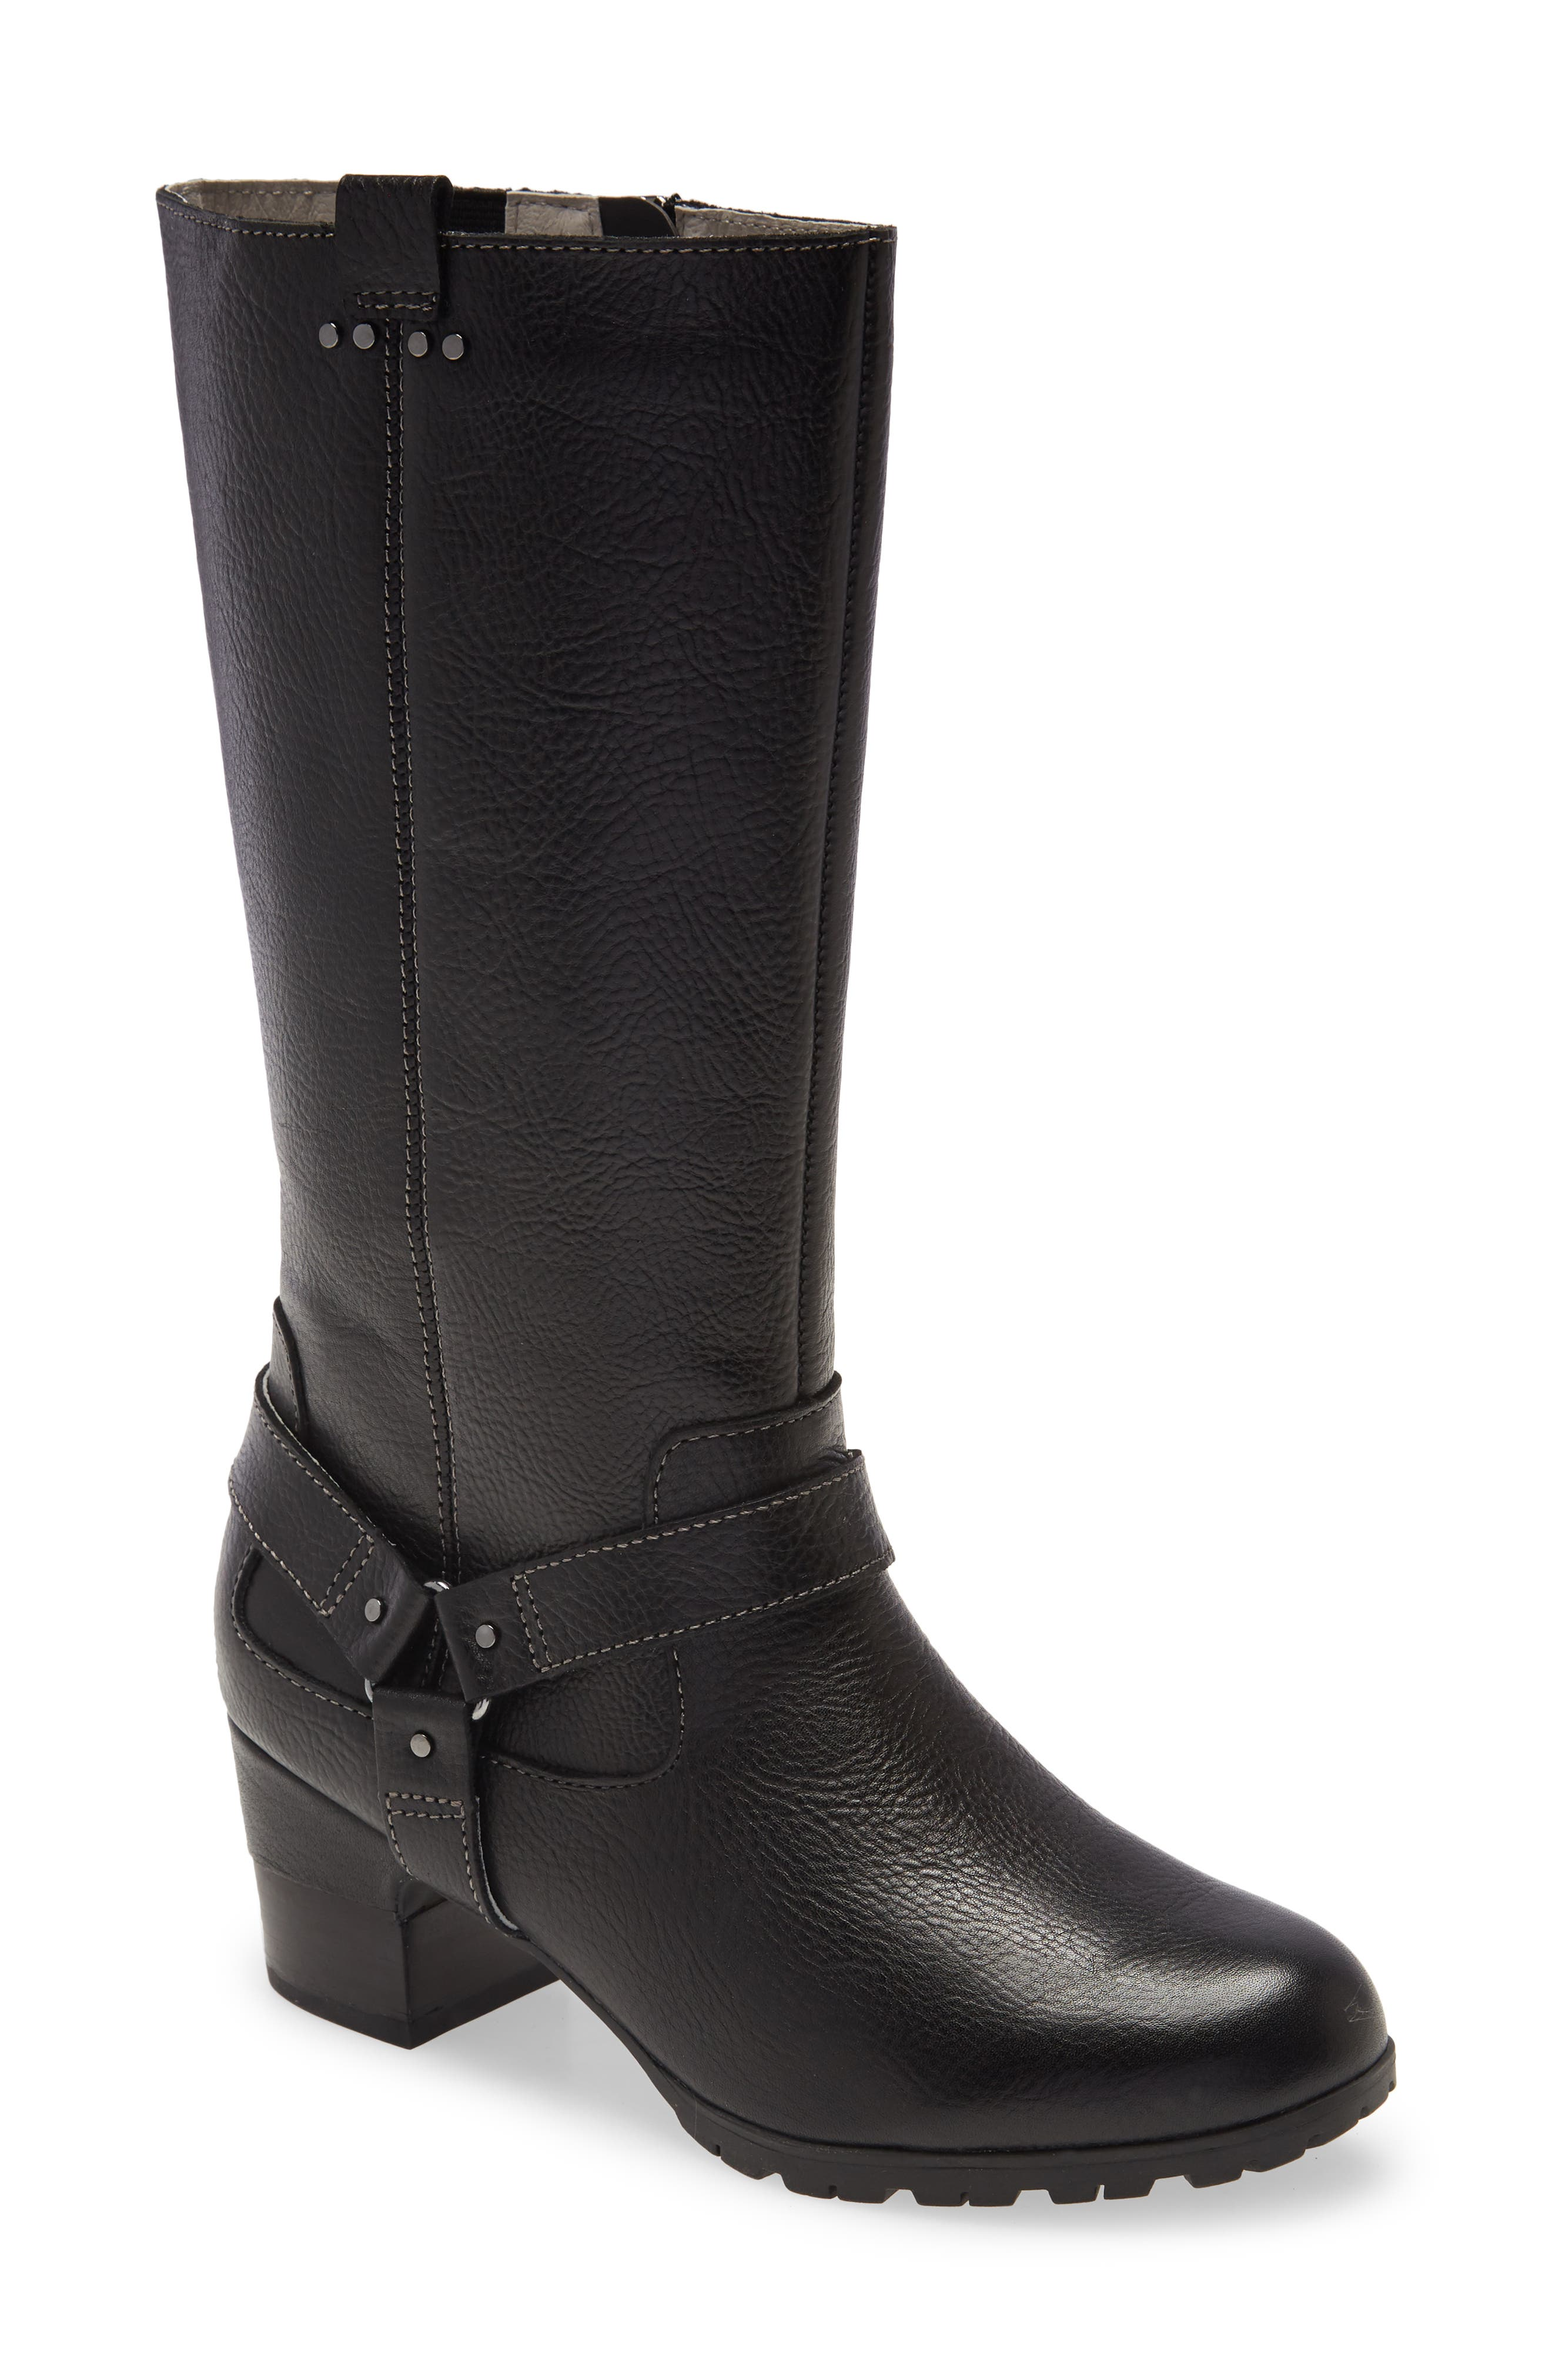 Autumn Water Resistant Leather Boot